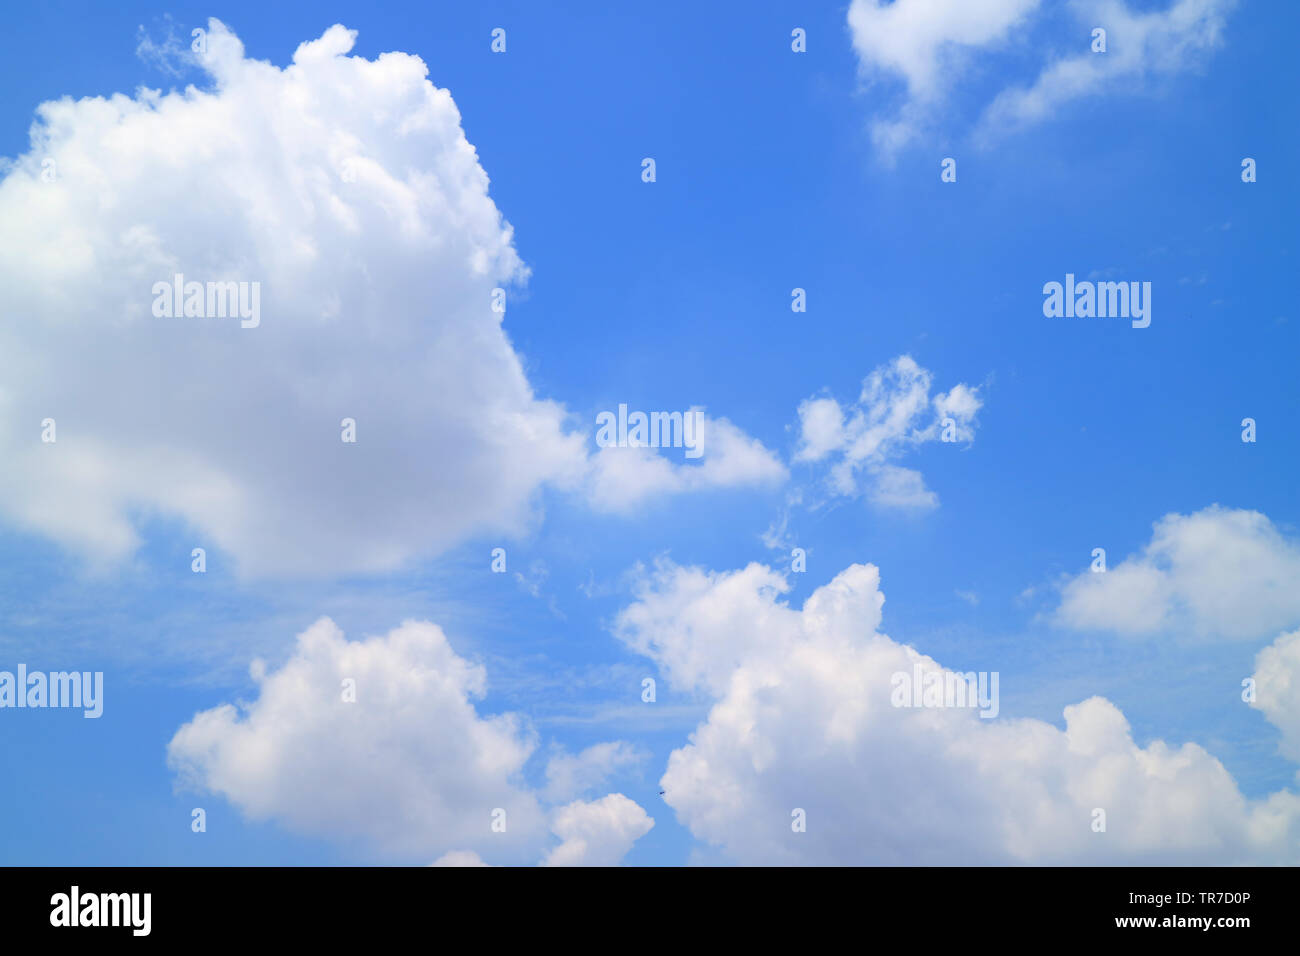 Vibrant sunny blue sky with white fluffy clouds - Stock Image